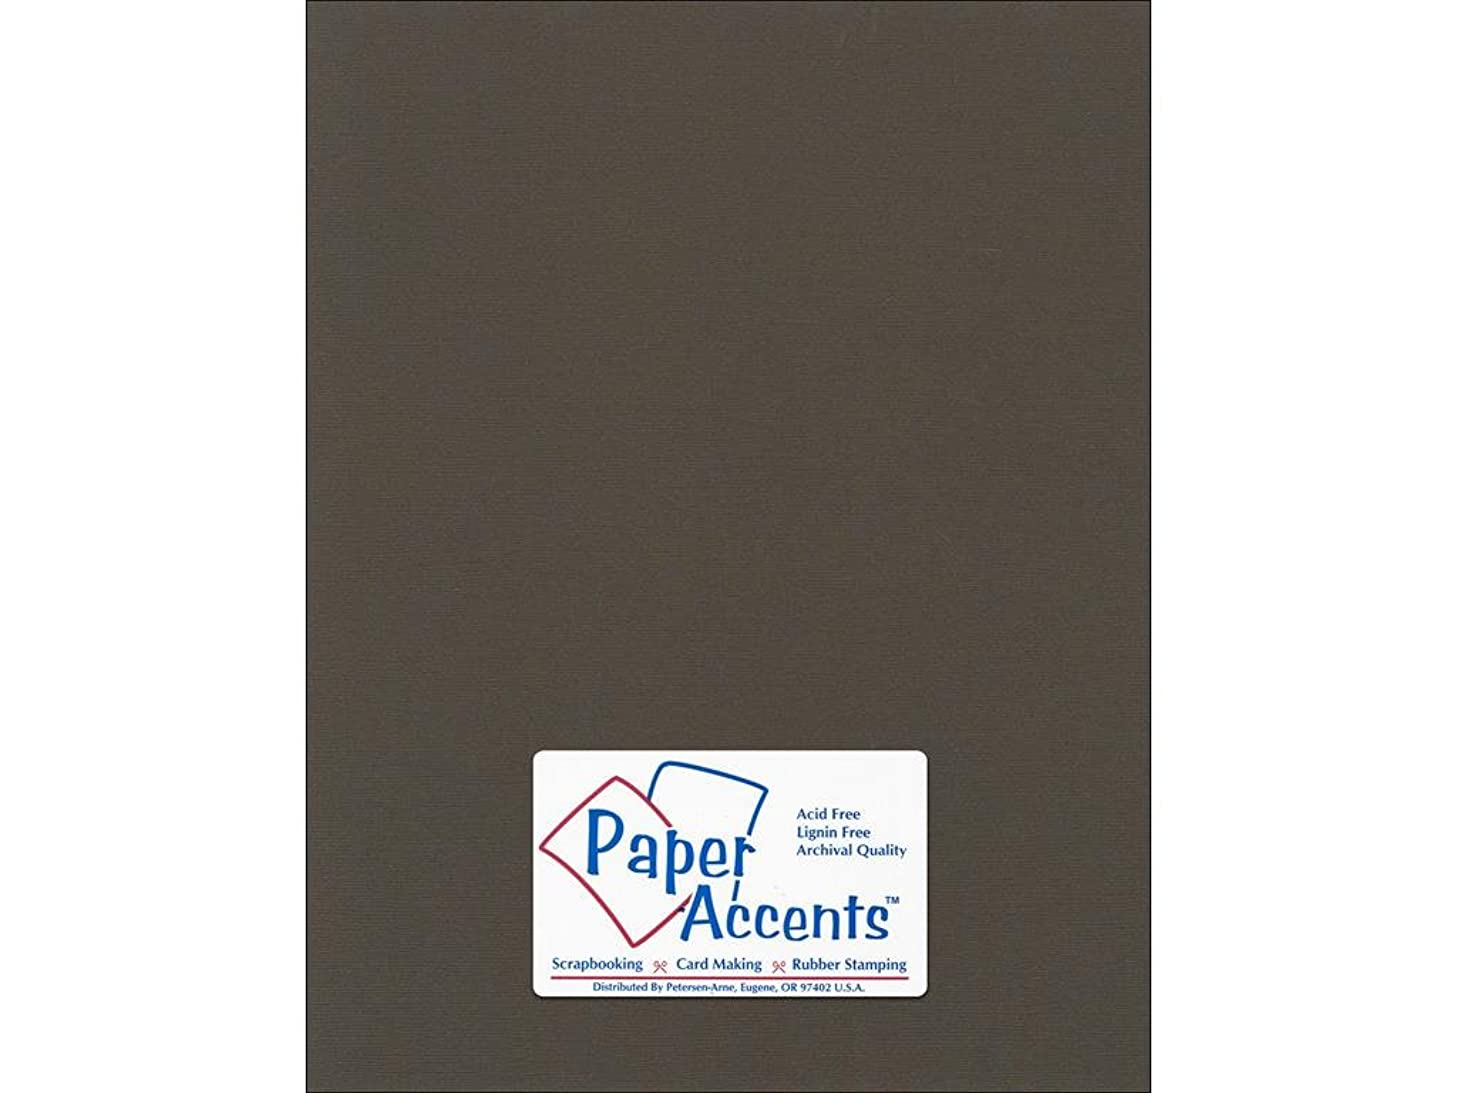 Accent Design Paper Accents Cdstk Canvas 8.5x11 80# Brown Eyes